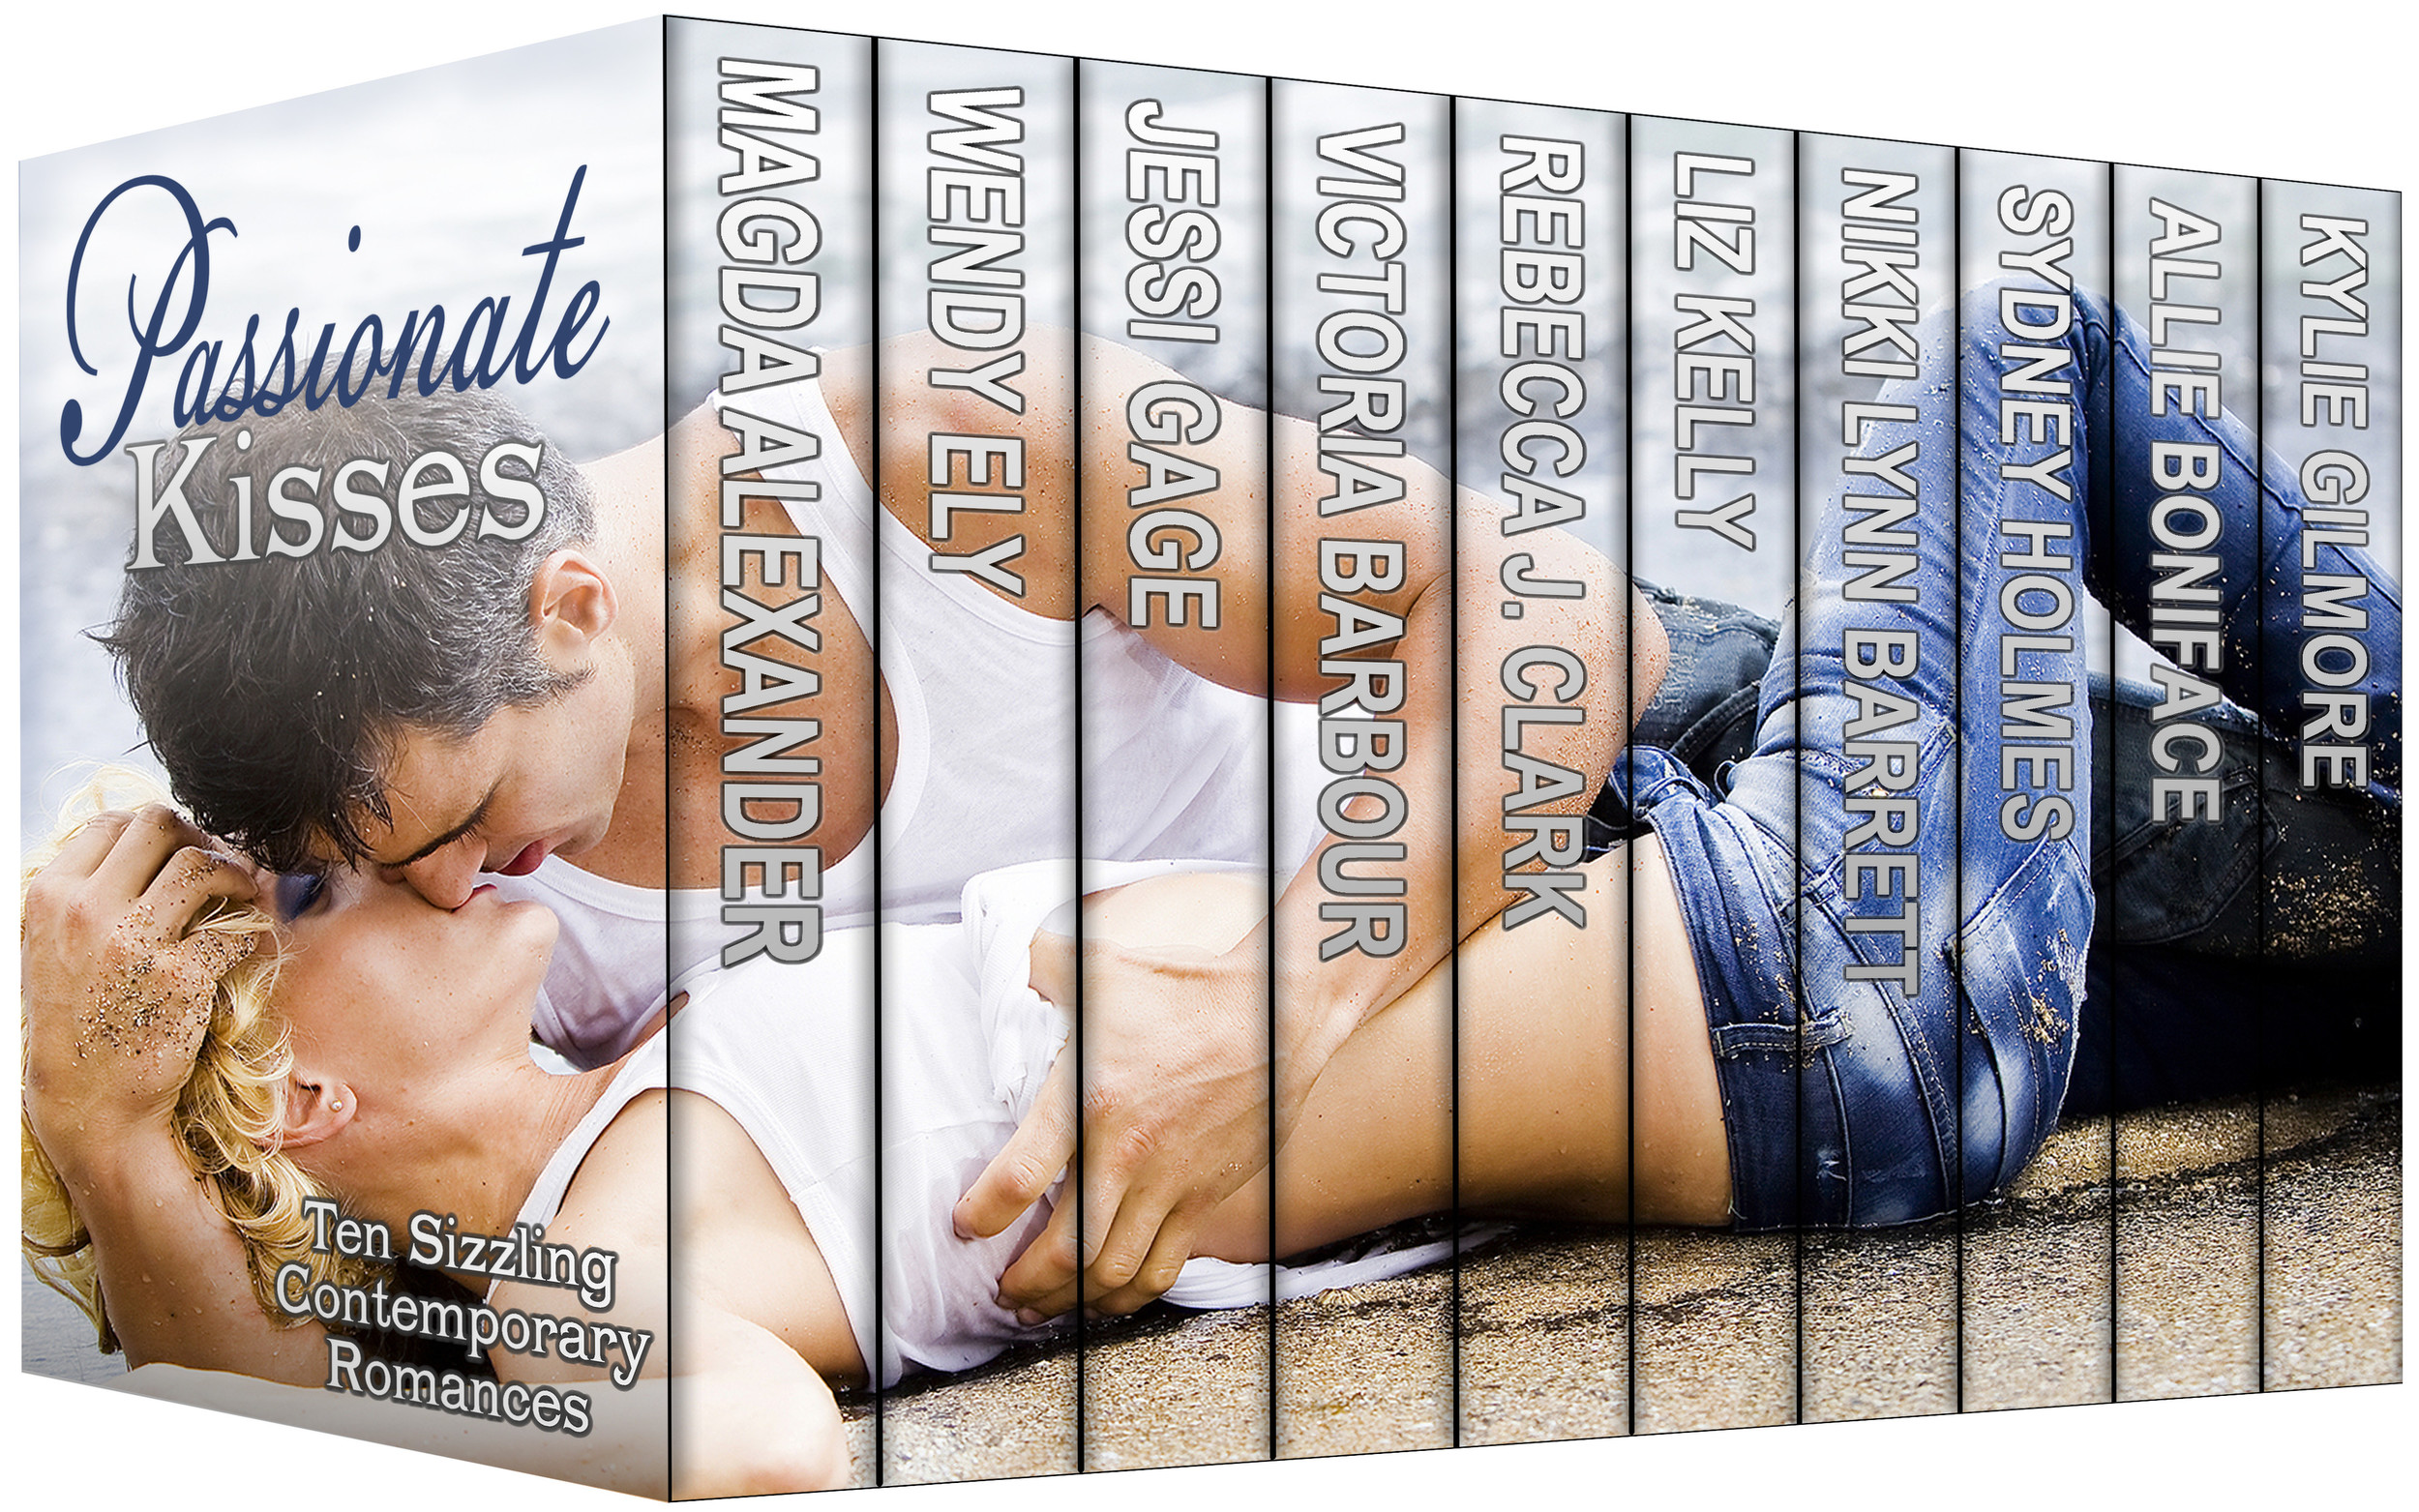 Cover Reveal for Passionate Kisses! Click on the image to head to our Facebook page and give us a like. :)